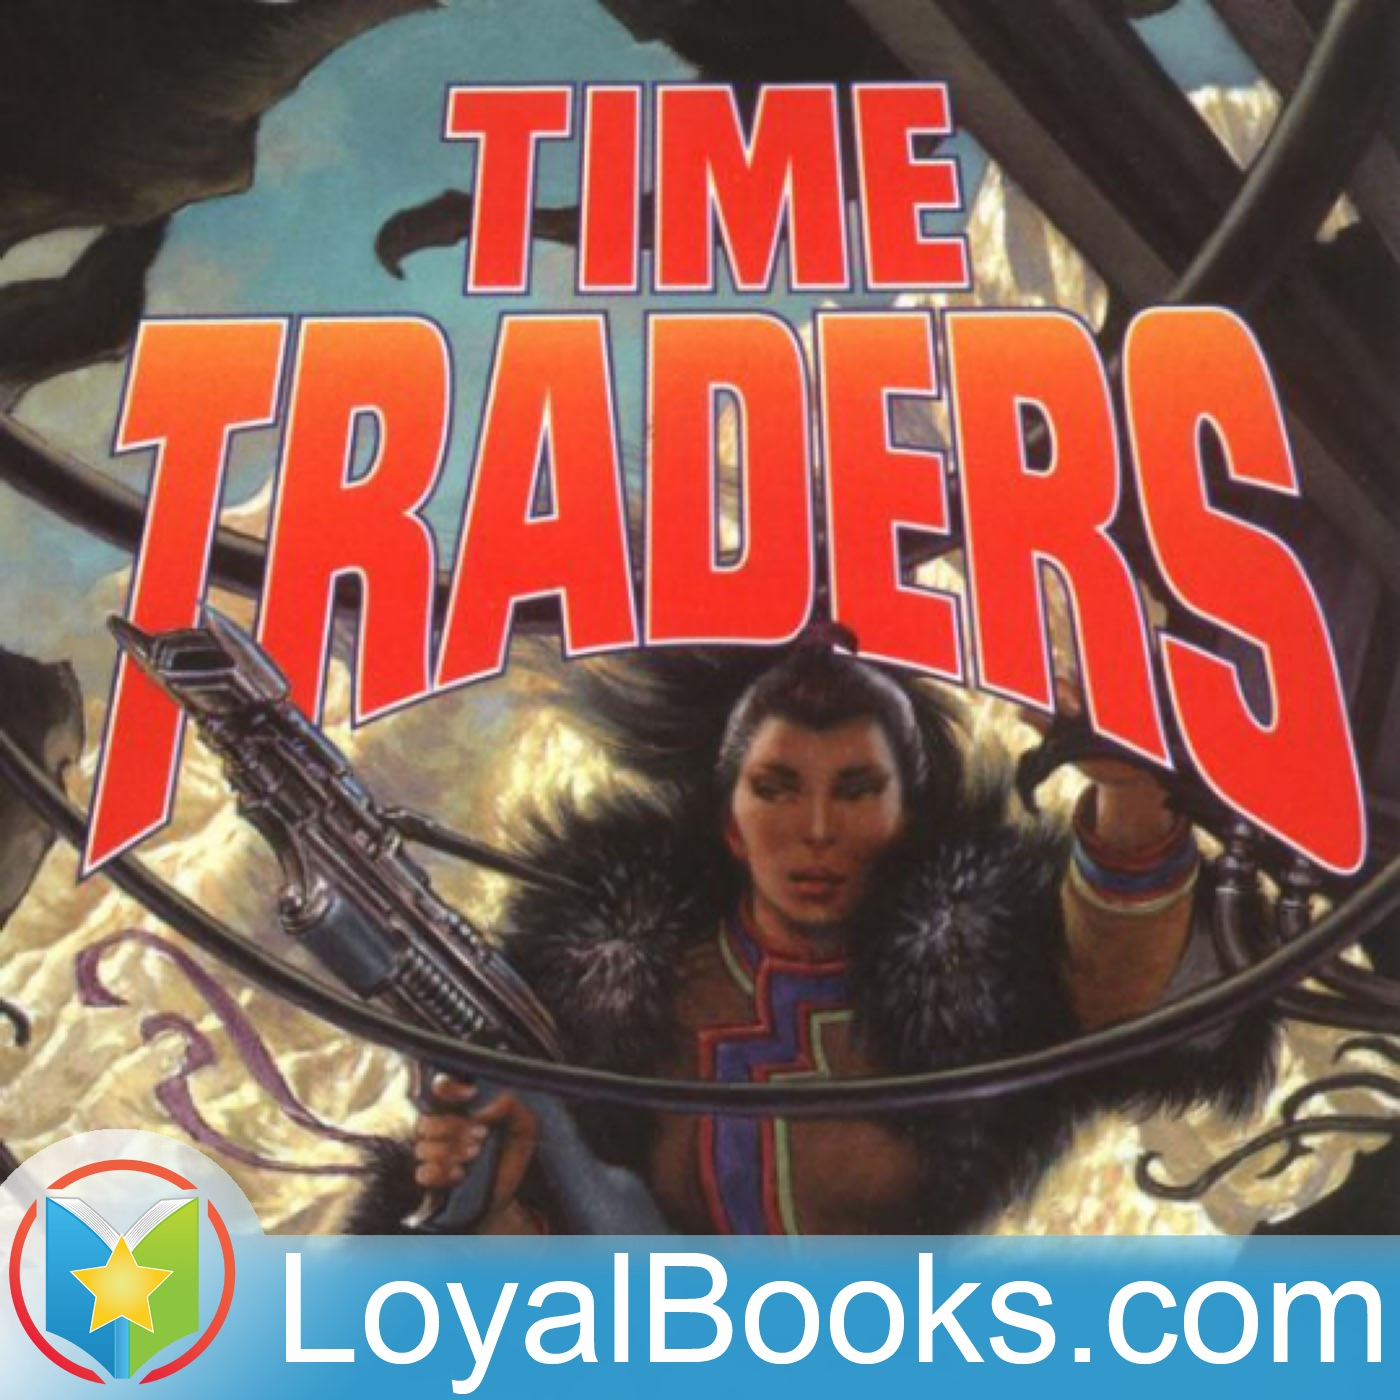 <![CDATA[The Time Traders by Andre Norton]]>